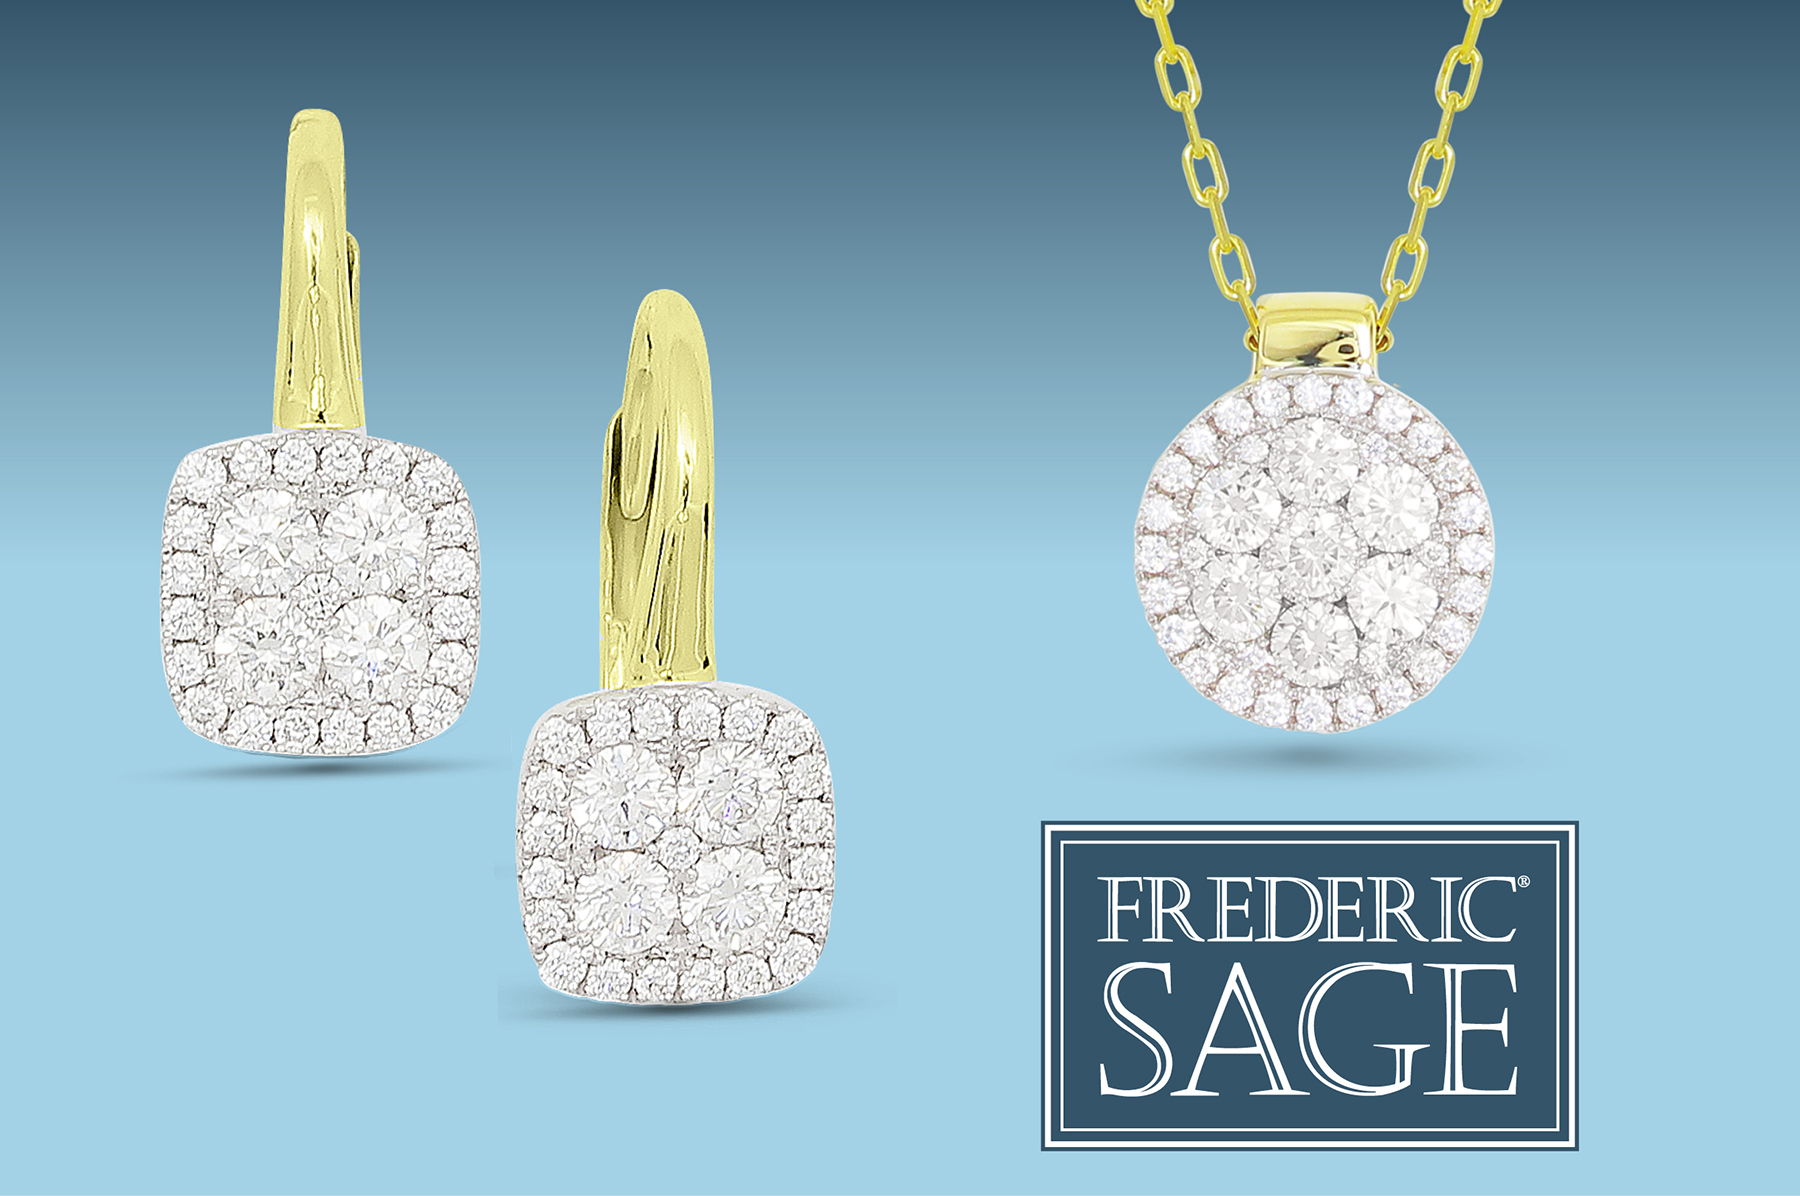 Frederic Sage Trunk Show